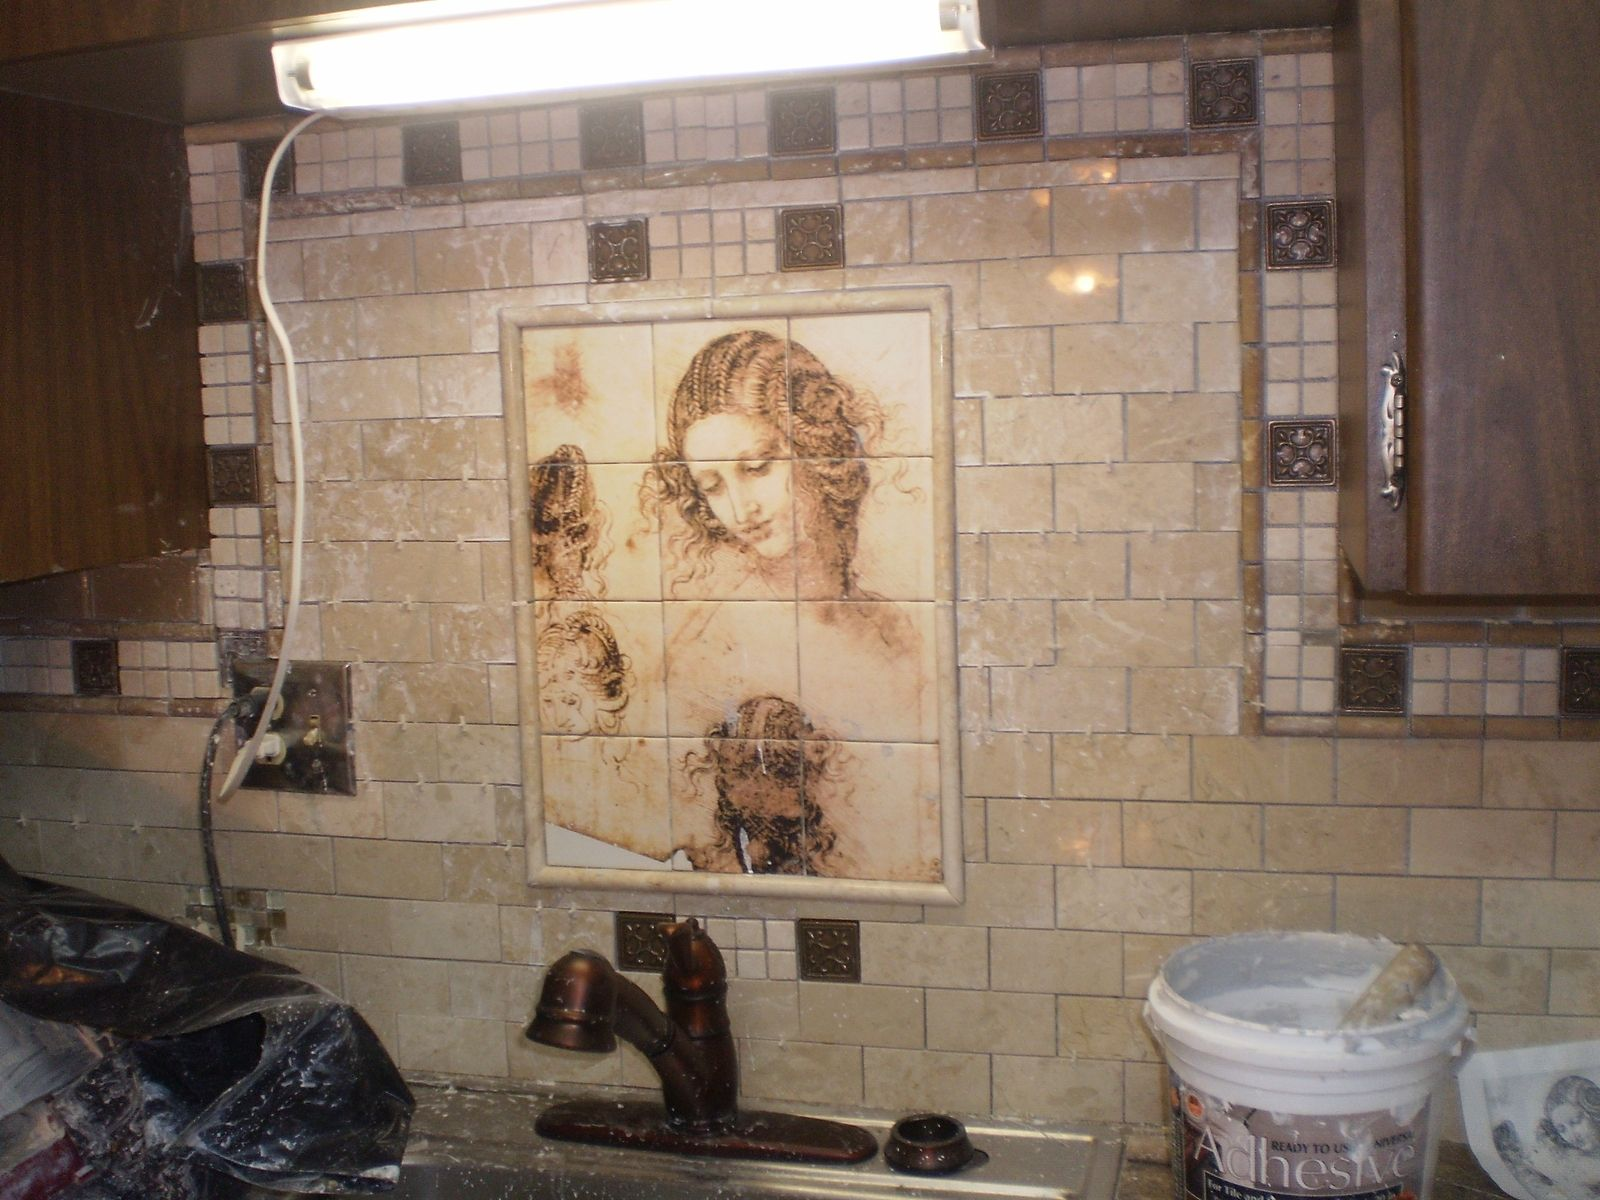 Handmade ceramic or marble kitchen tile mural by flekman for Custom tile mural